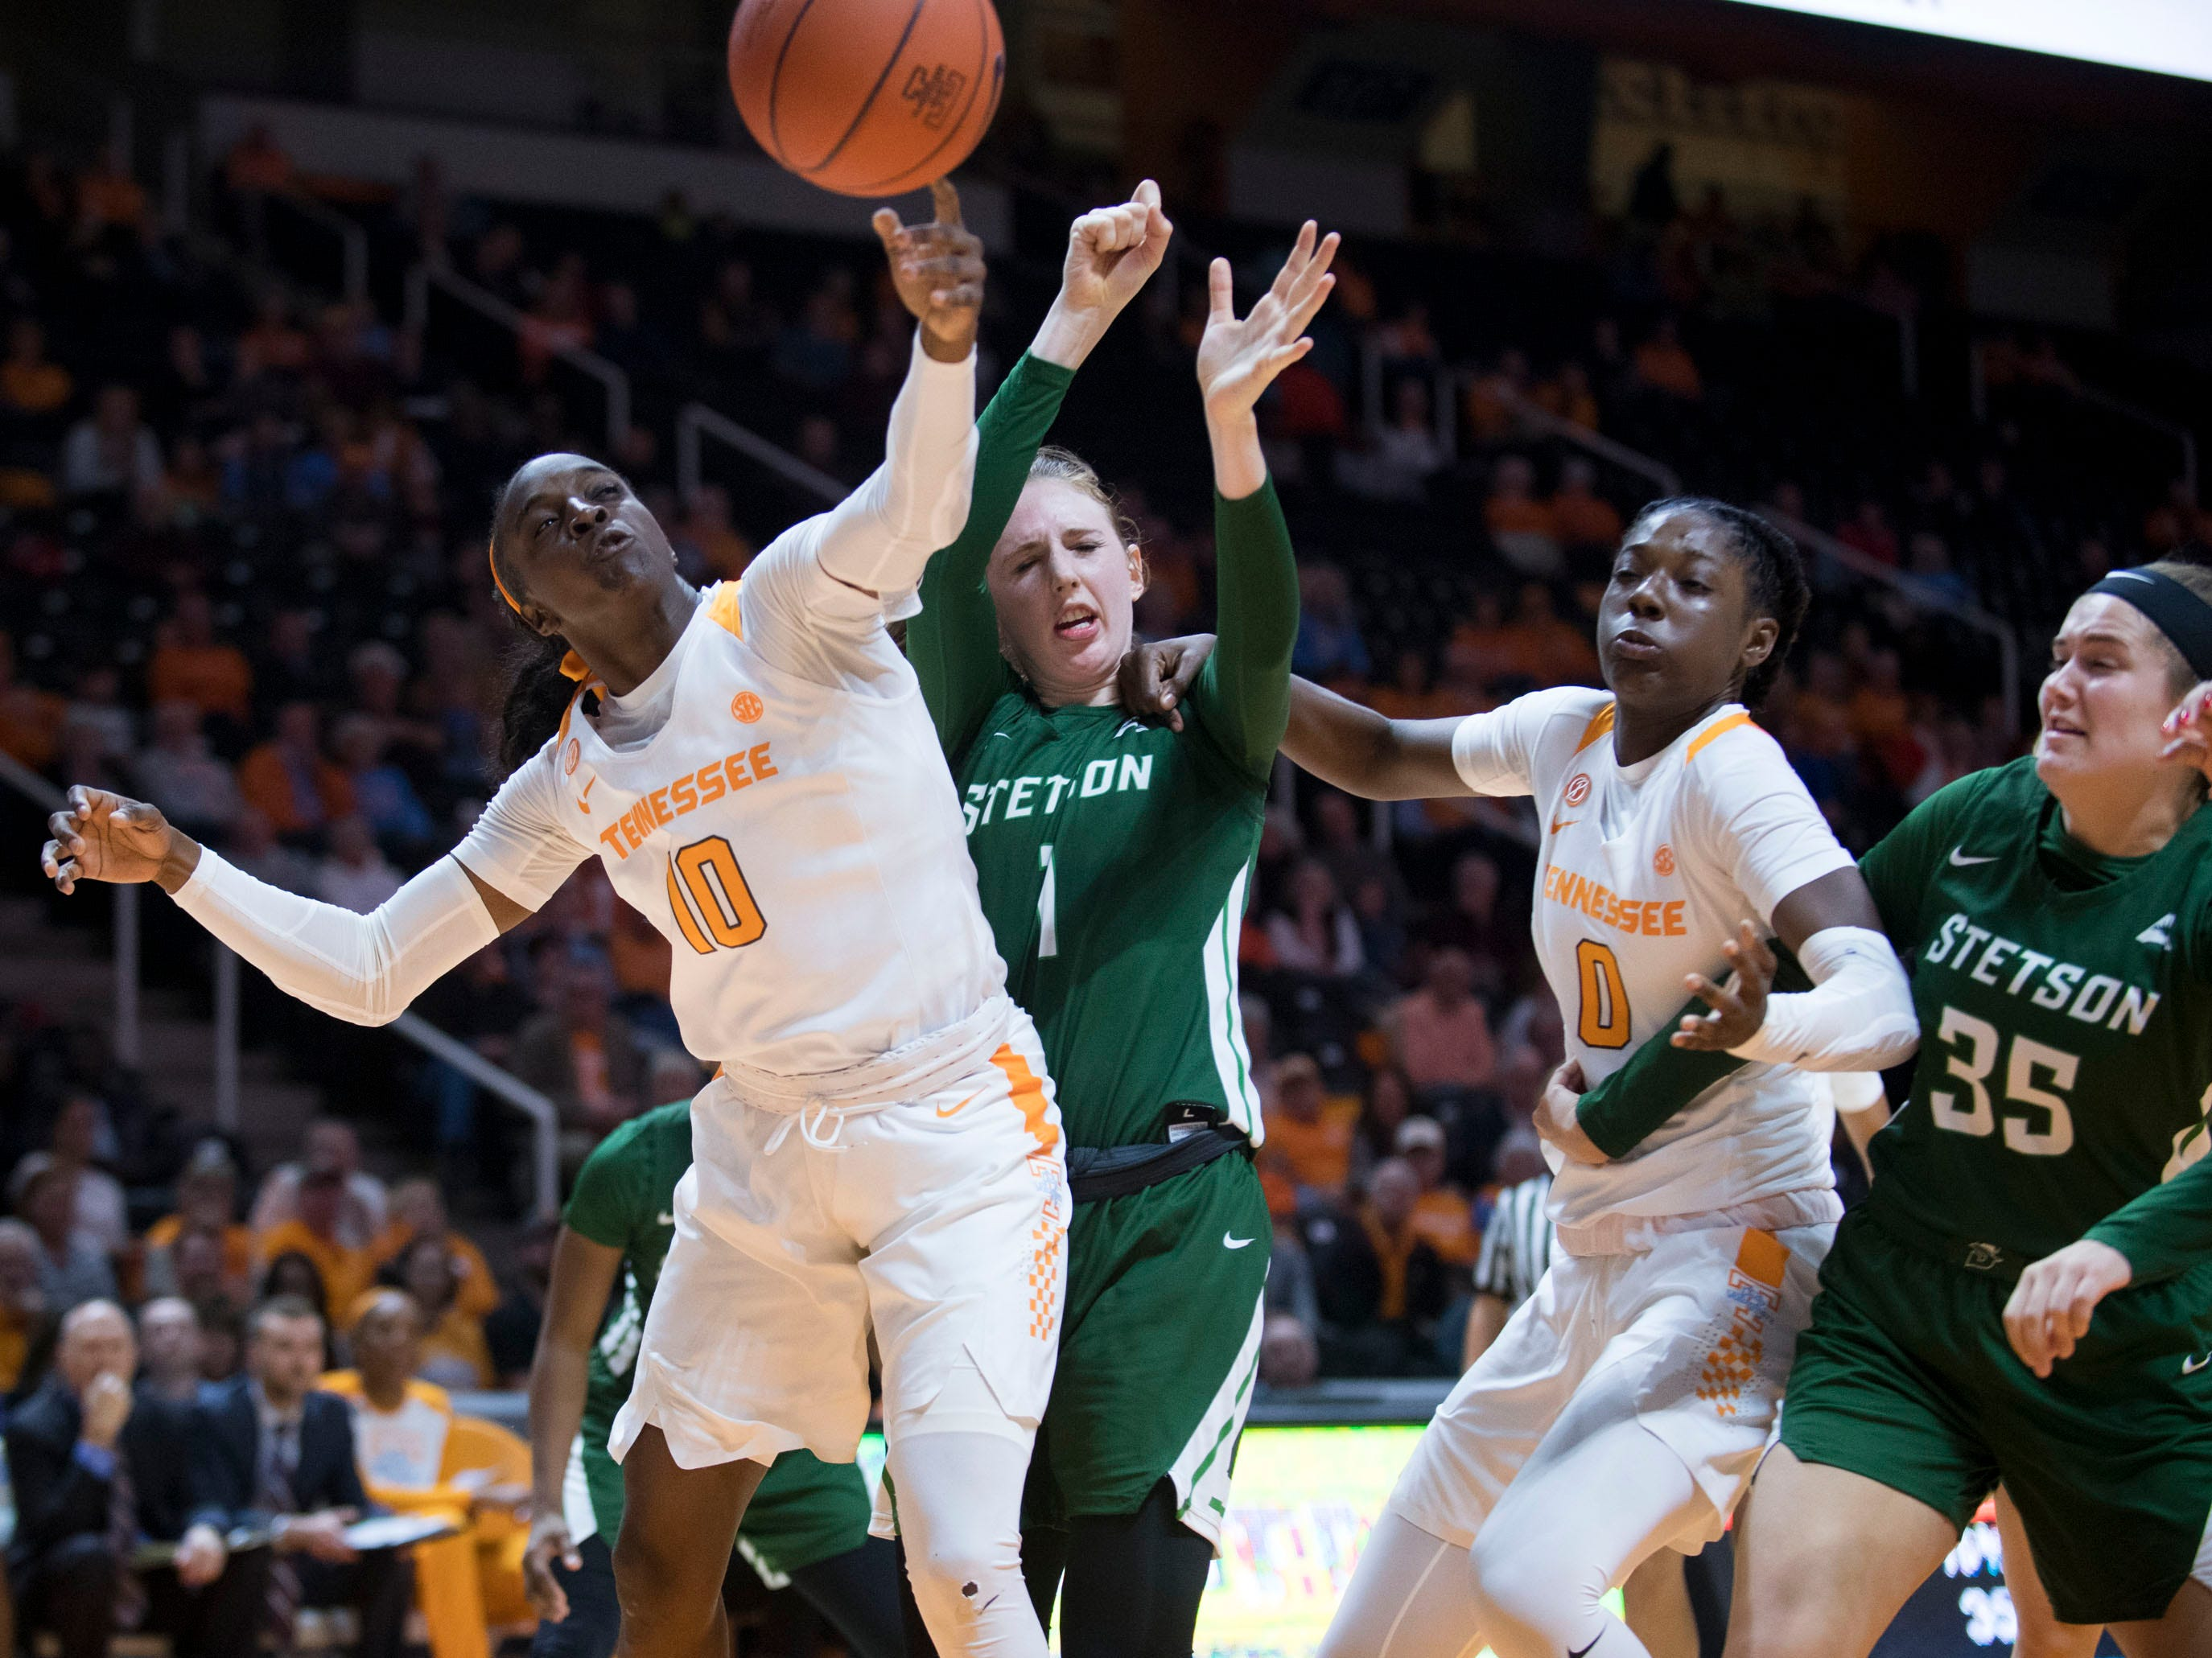 Tennessee's Meme Jackson (10) her hand on the rebound over Stetson's Sarah Sagerer (1) at Thompson-Boling Arena on Wednesday, December 5, 2018.